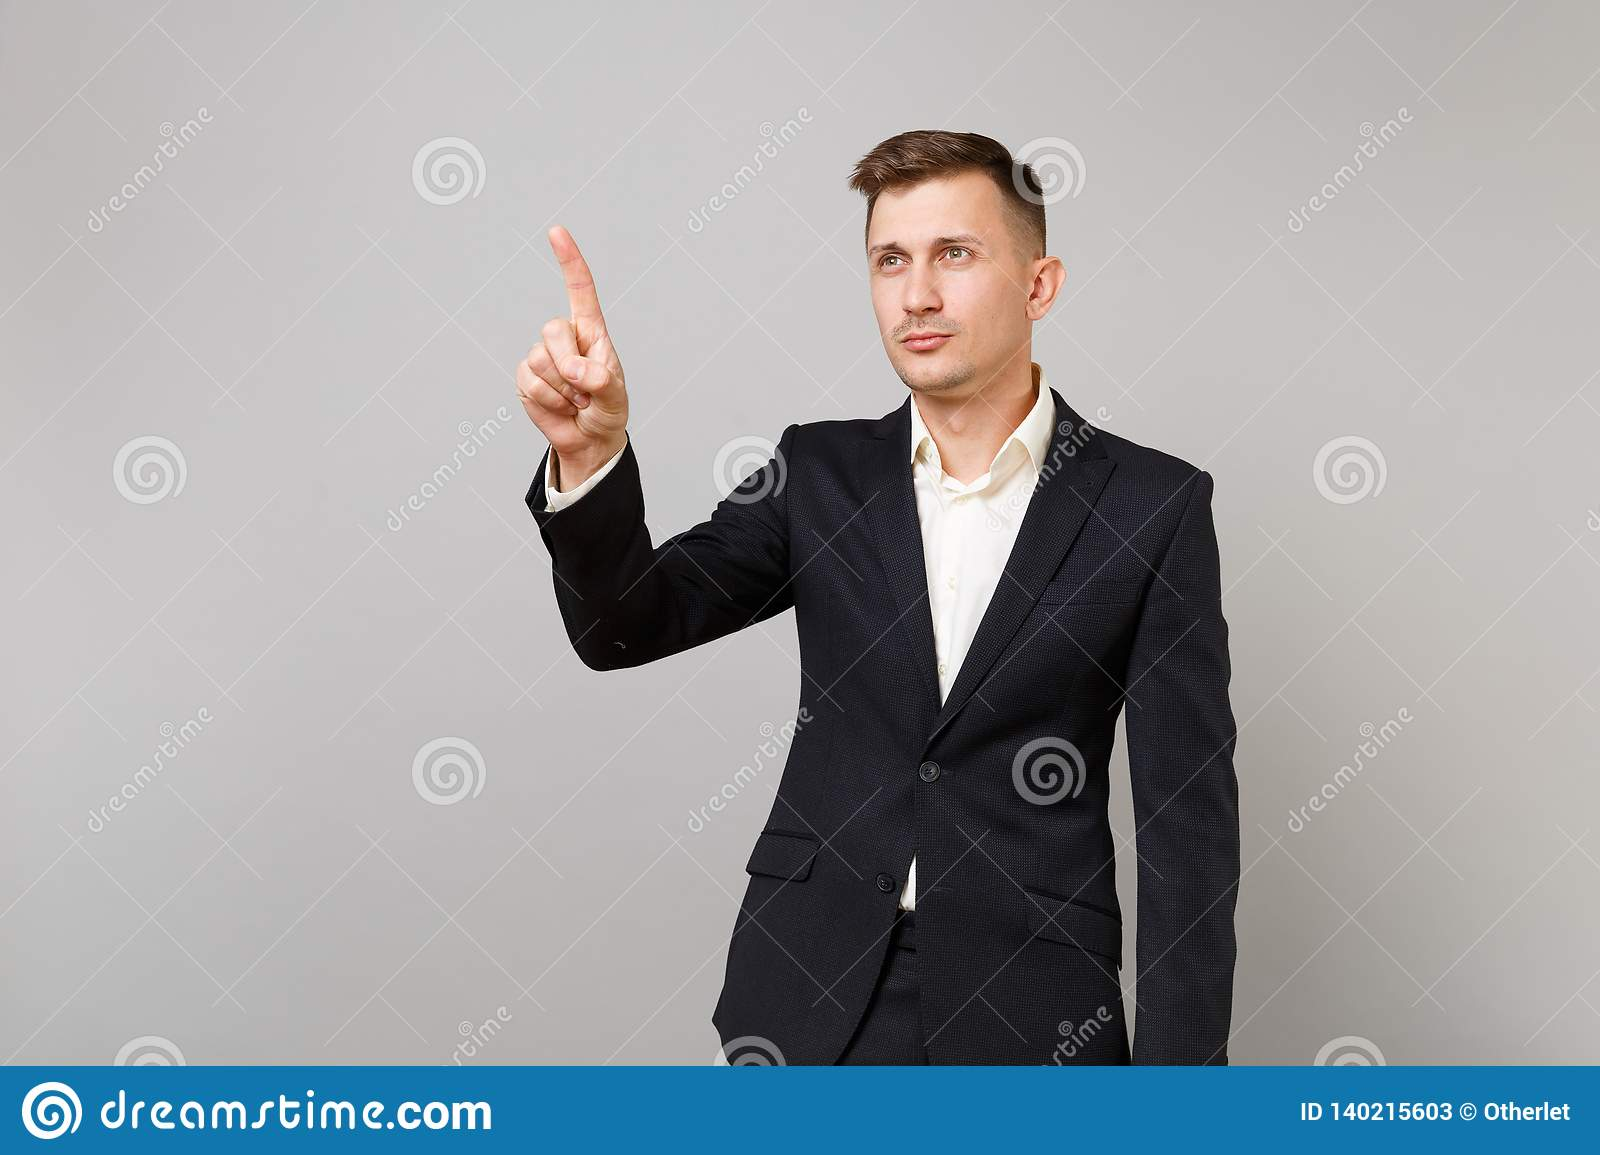 Smart young business man touch something like push click on button pointing at floating virtual screen isolated on grey